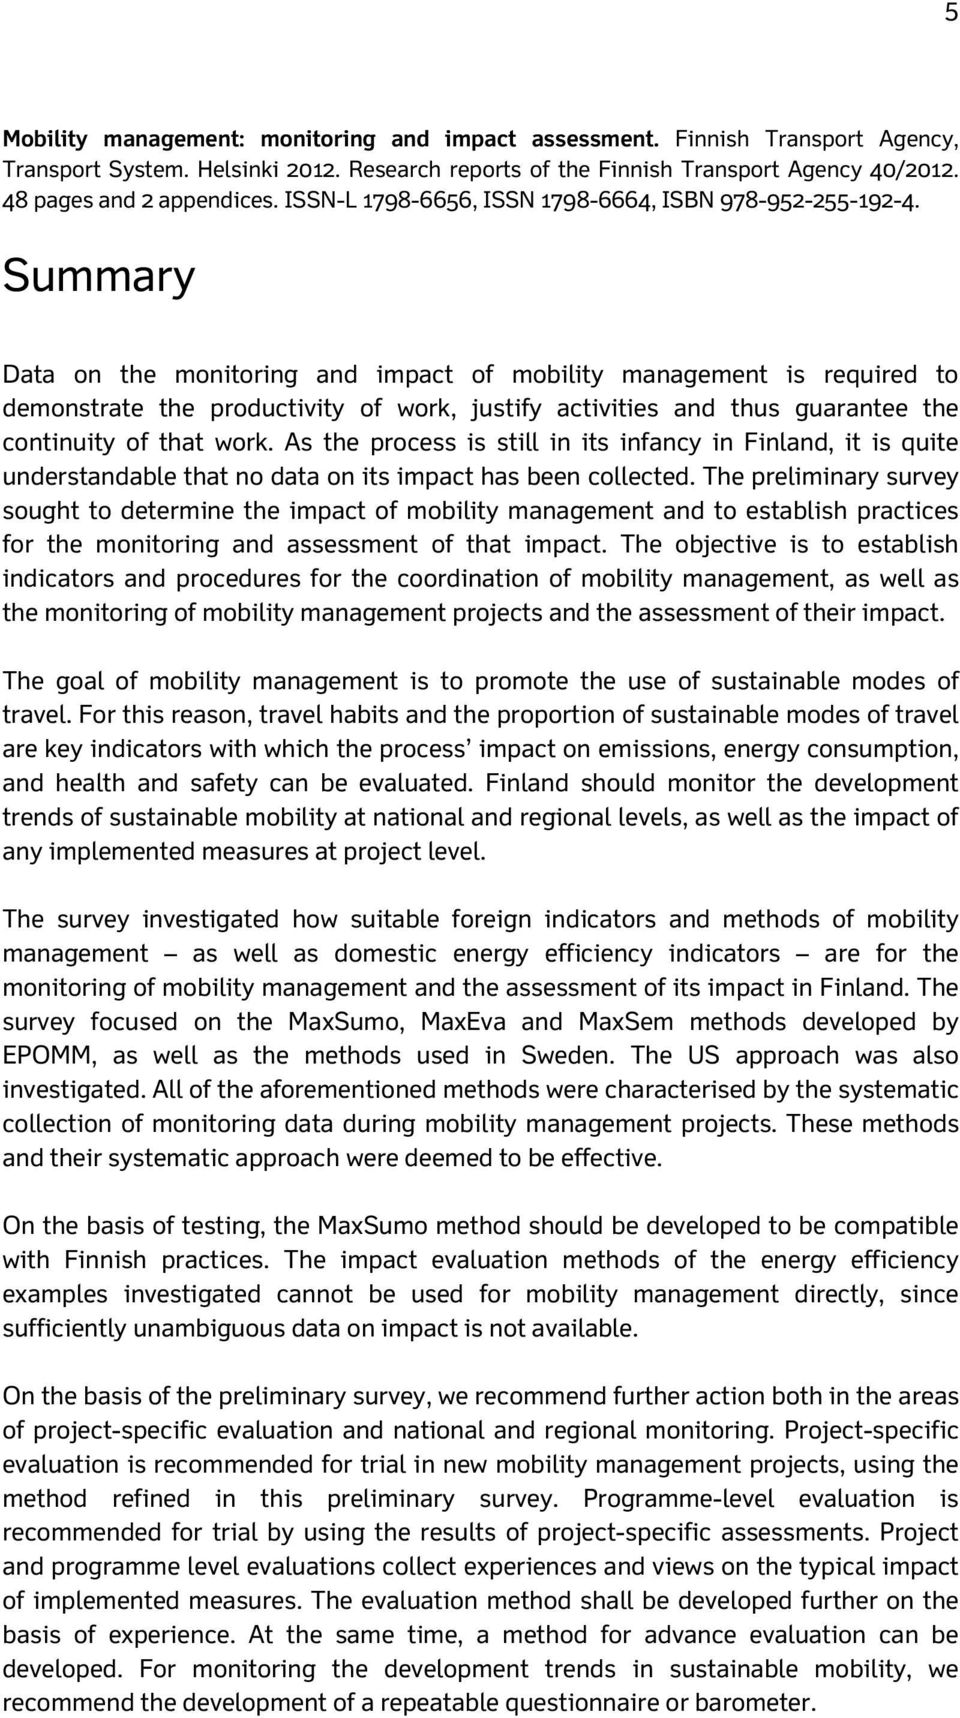 Summary Data on the monitoring and impact of mobility management is required to demonstrate the productivity of work, justify activities and thus guarantee the continuity of that work.